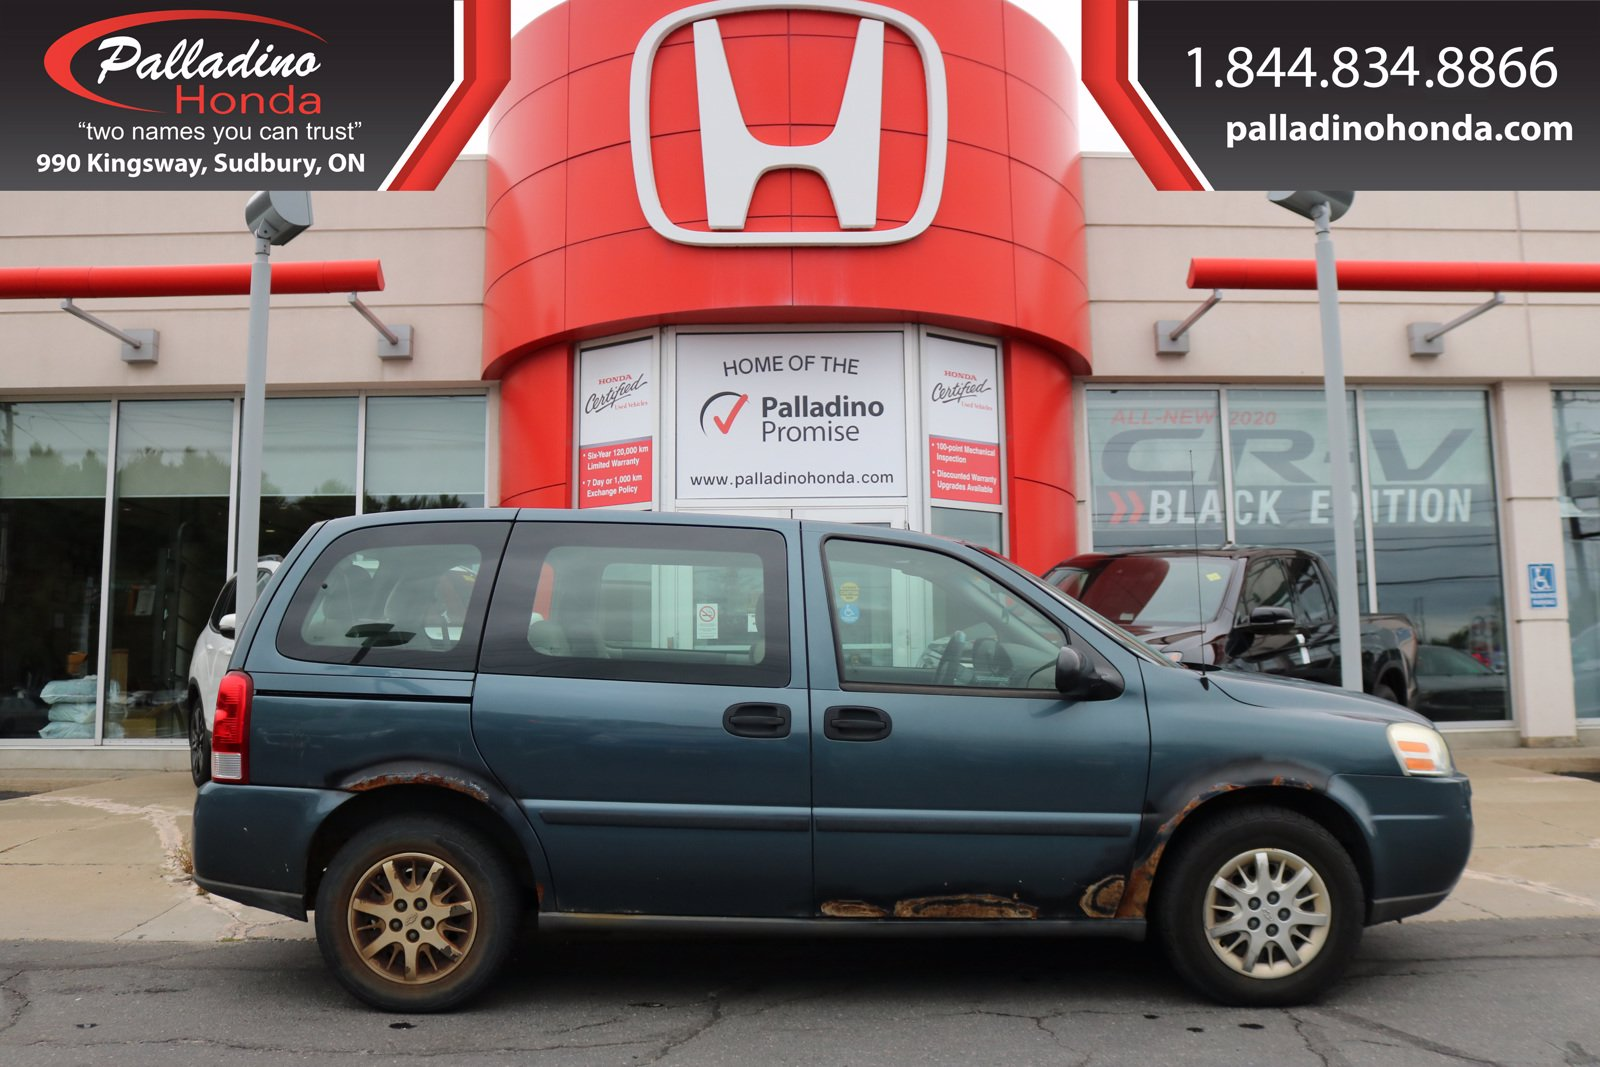 Pre-Owned 2005 Chevrolet Uplander Value-*AS-IS*